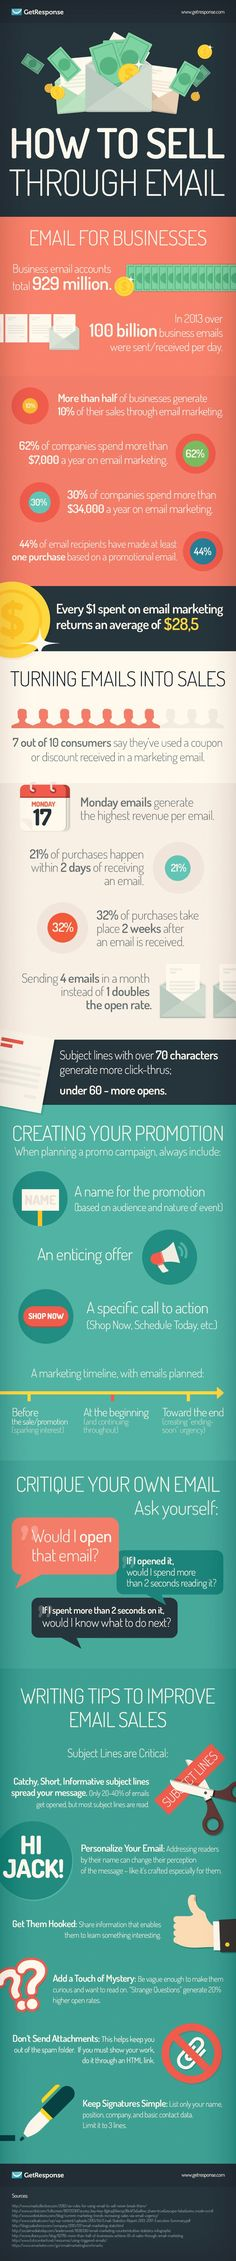 How to Sell Through Email www.socialmediama... Email marketing Infographic